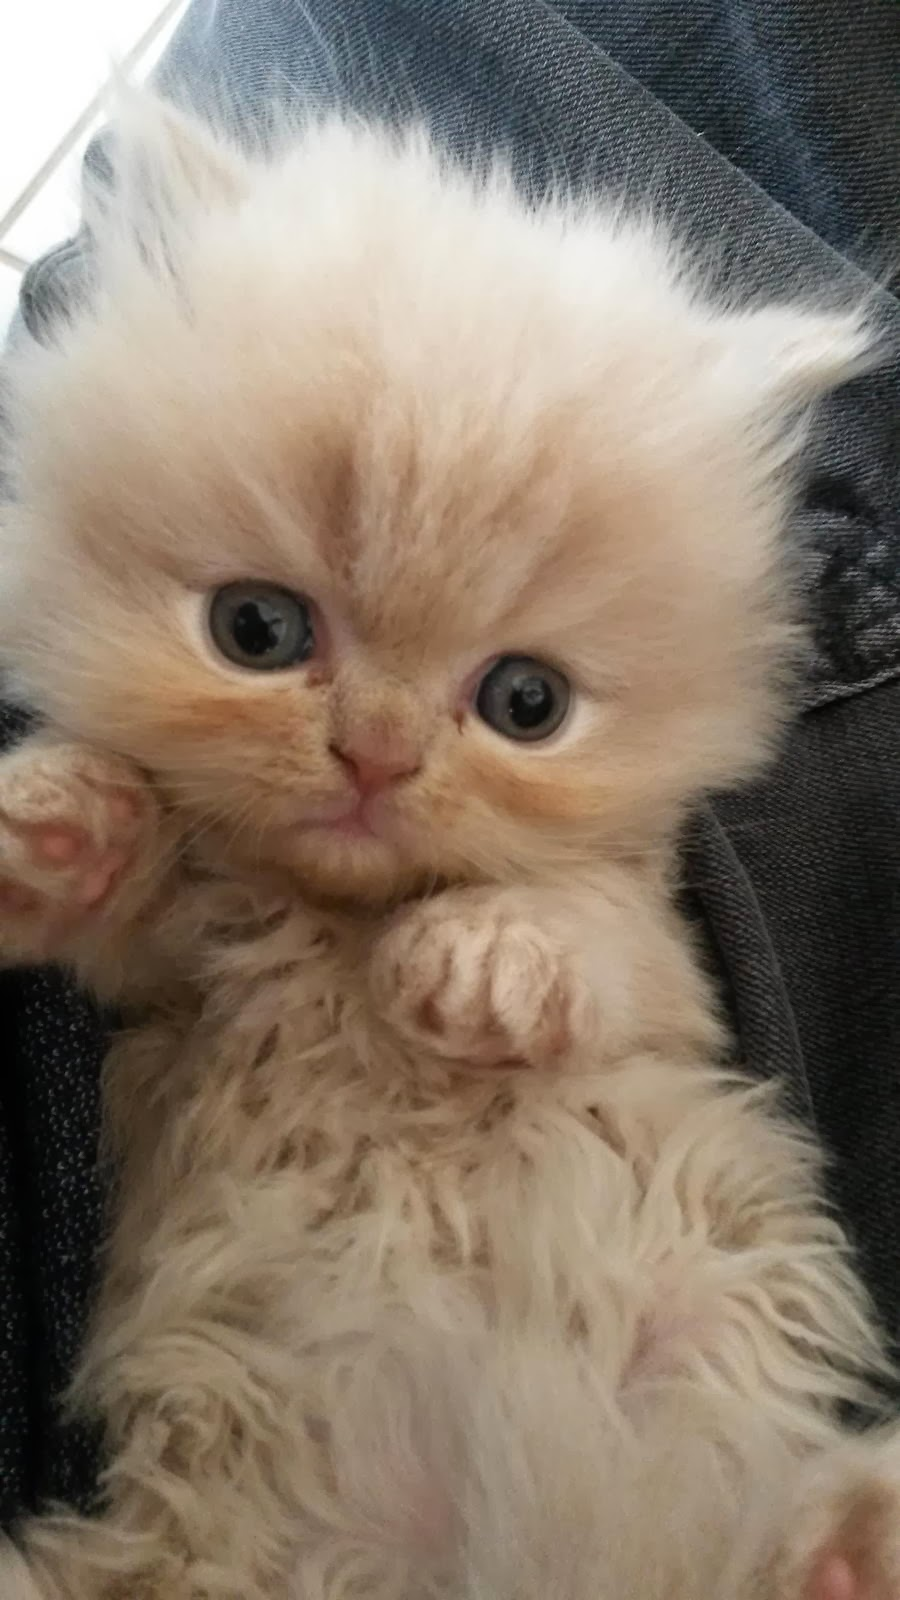 Funny cats - part 90 (40 pics + 10 gifs), adorable kitten picture